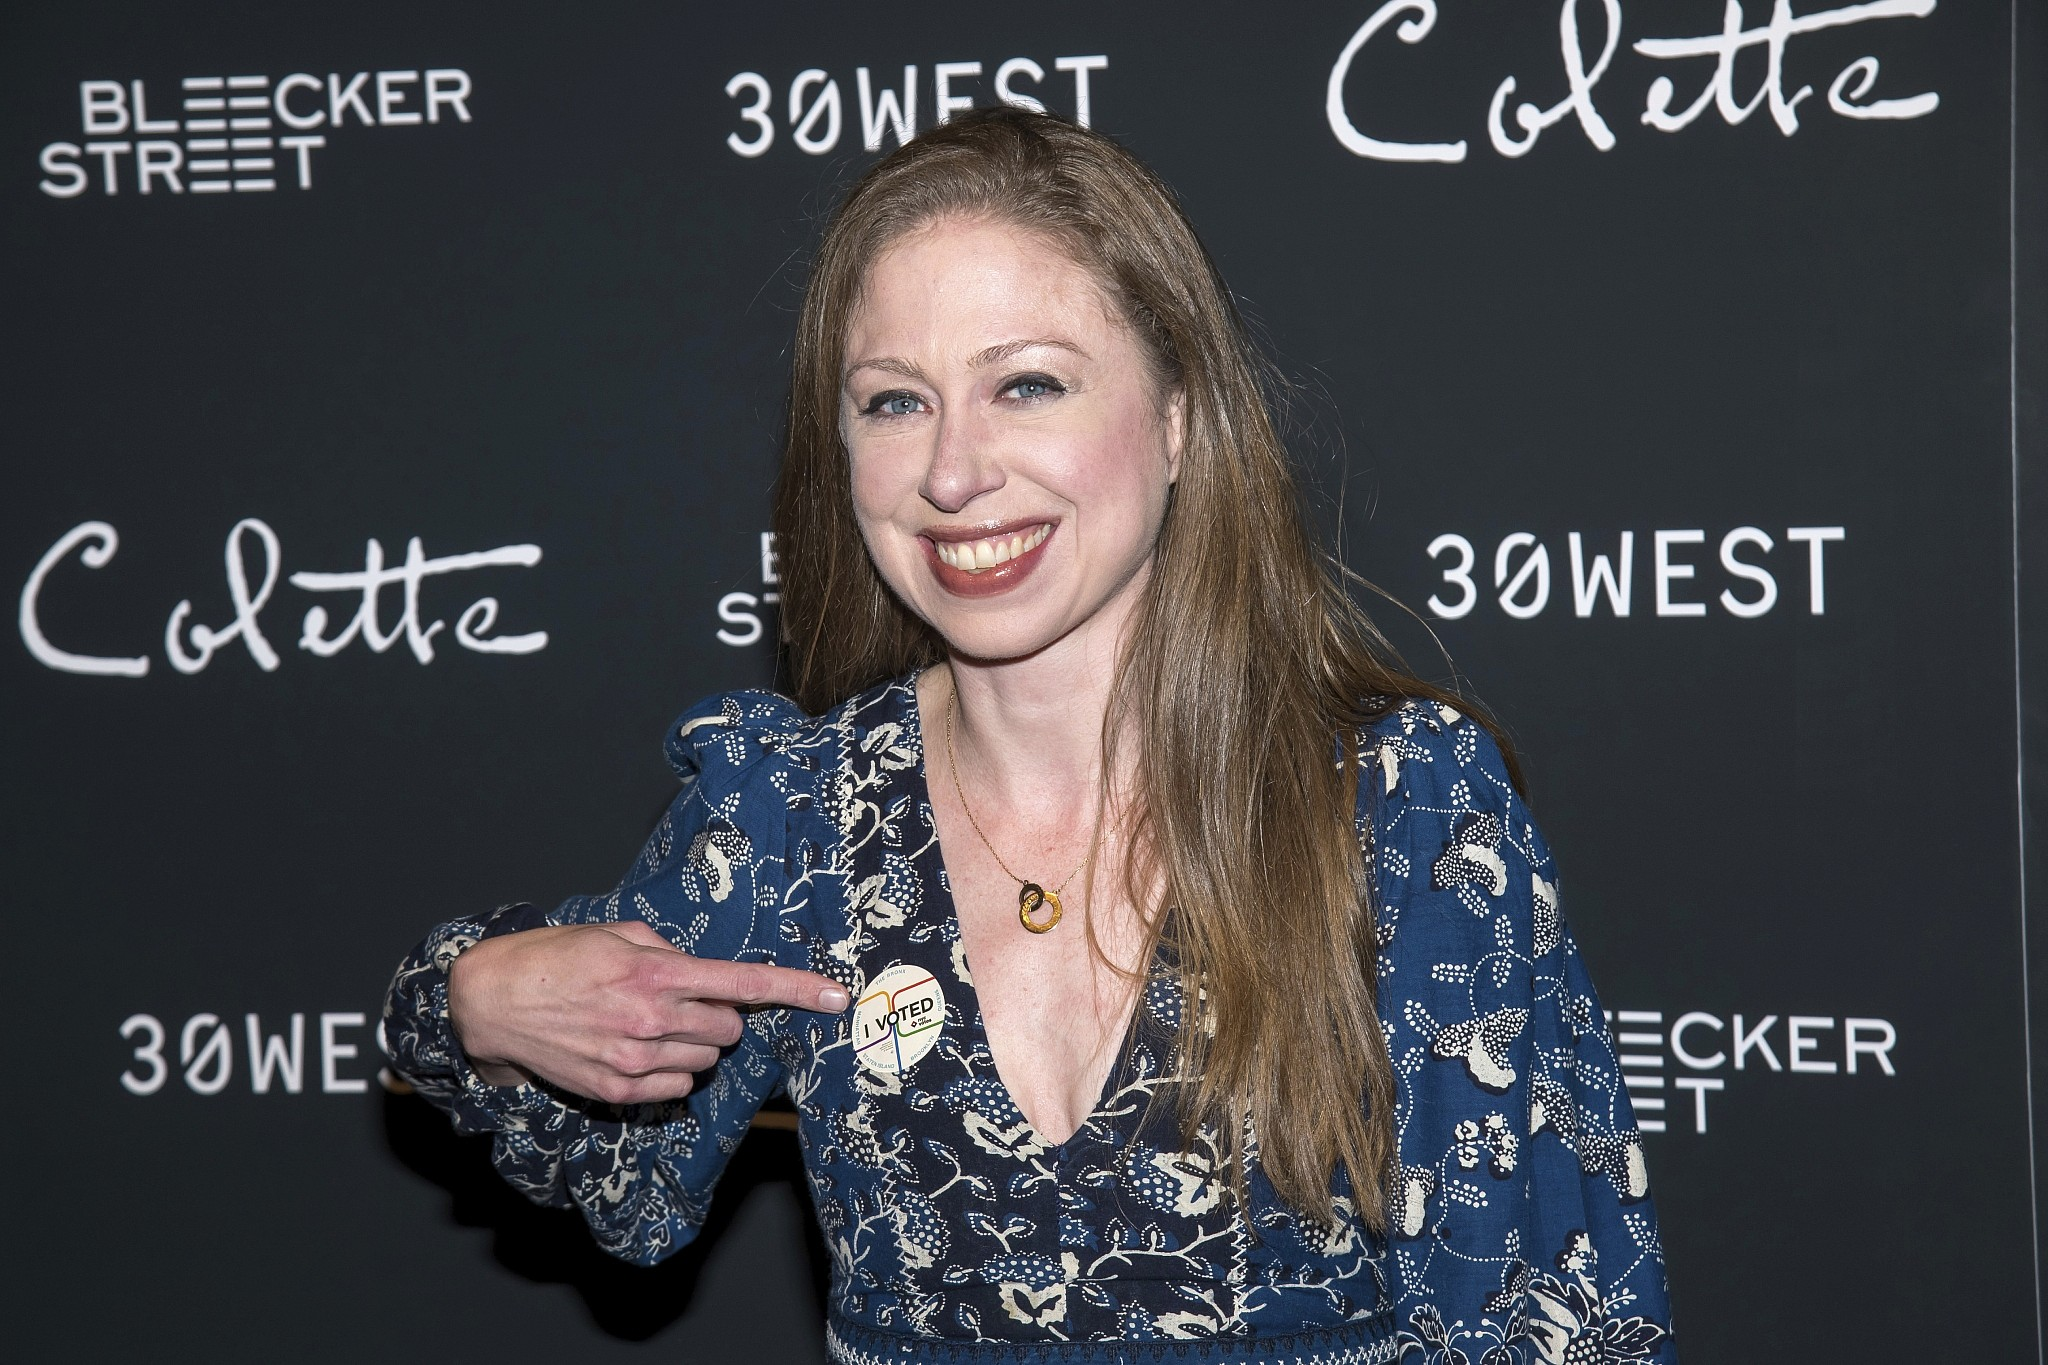 Chelsea Clinton announces pregnancy | The Times of Israel